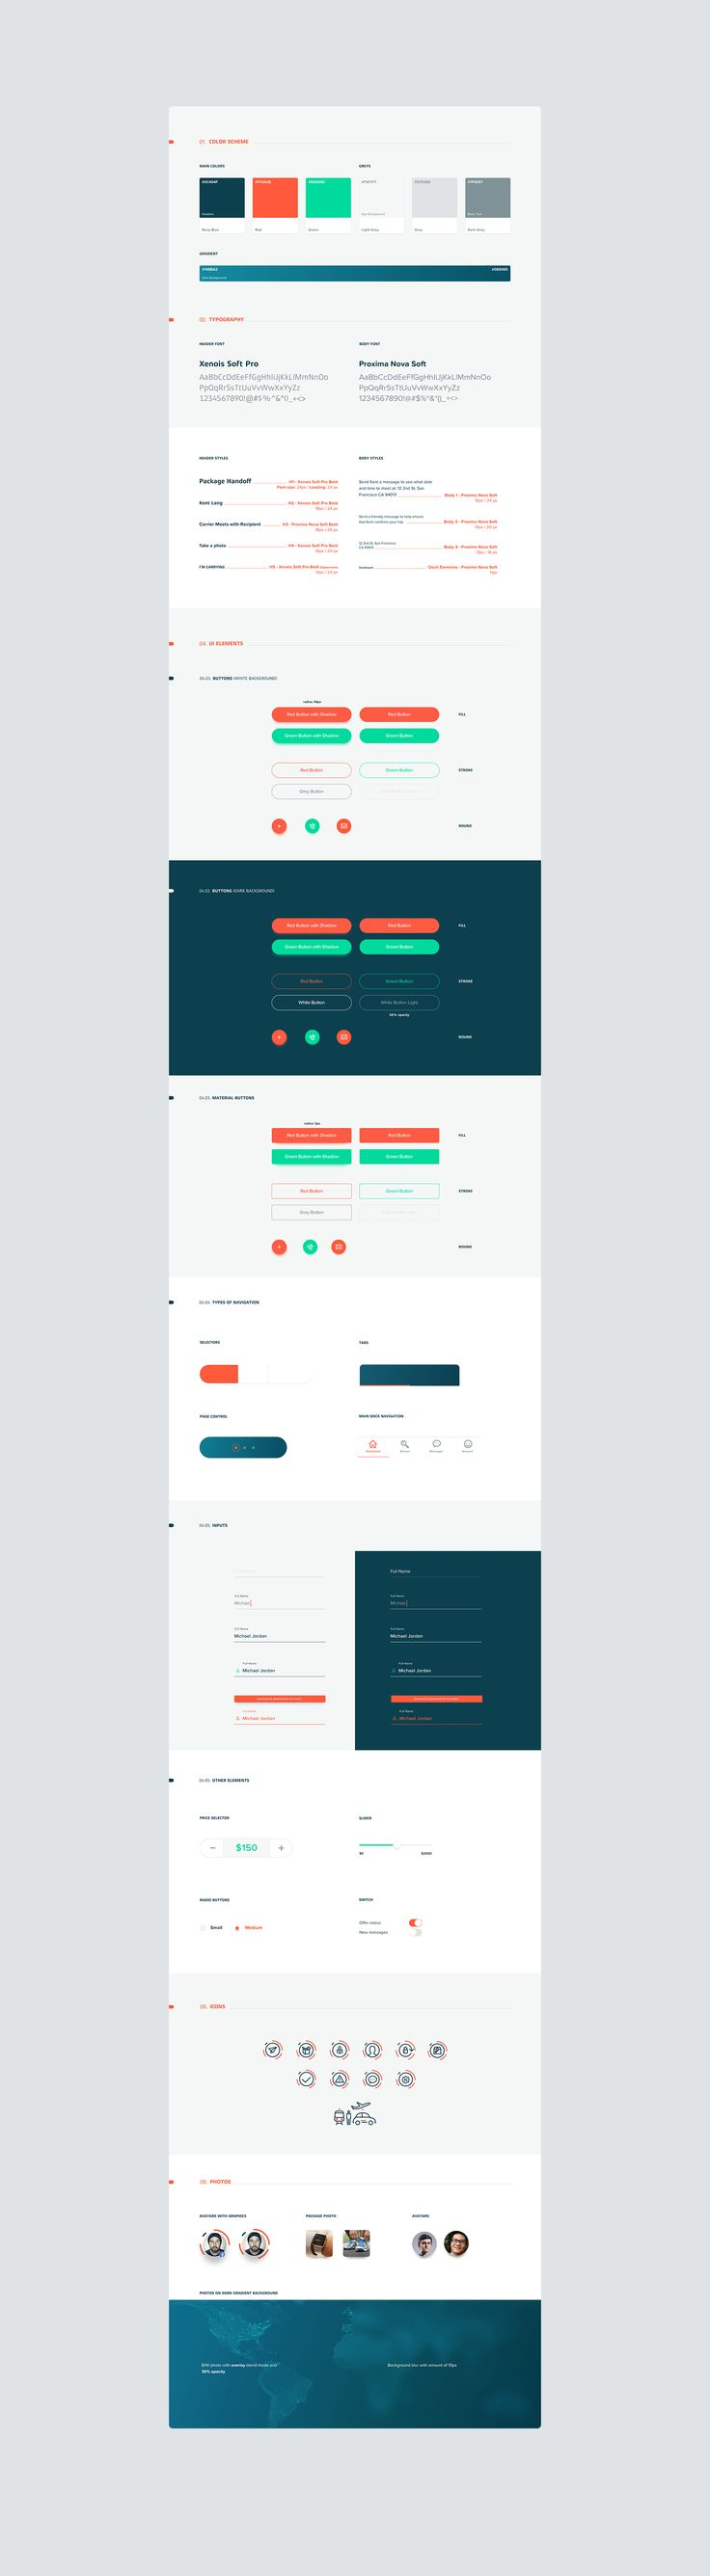 Style Guide → by Mik Skuza